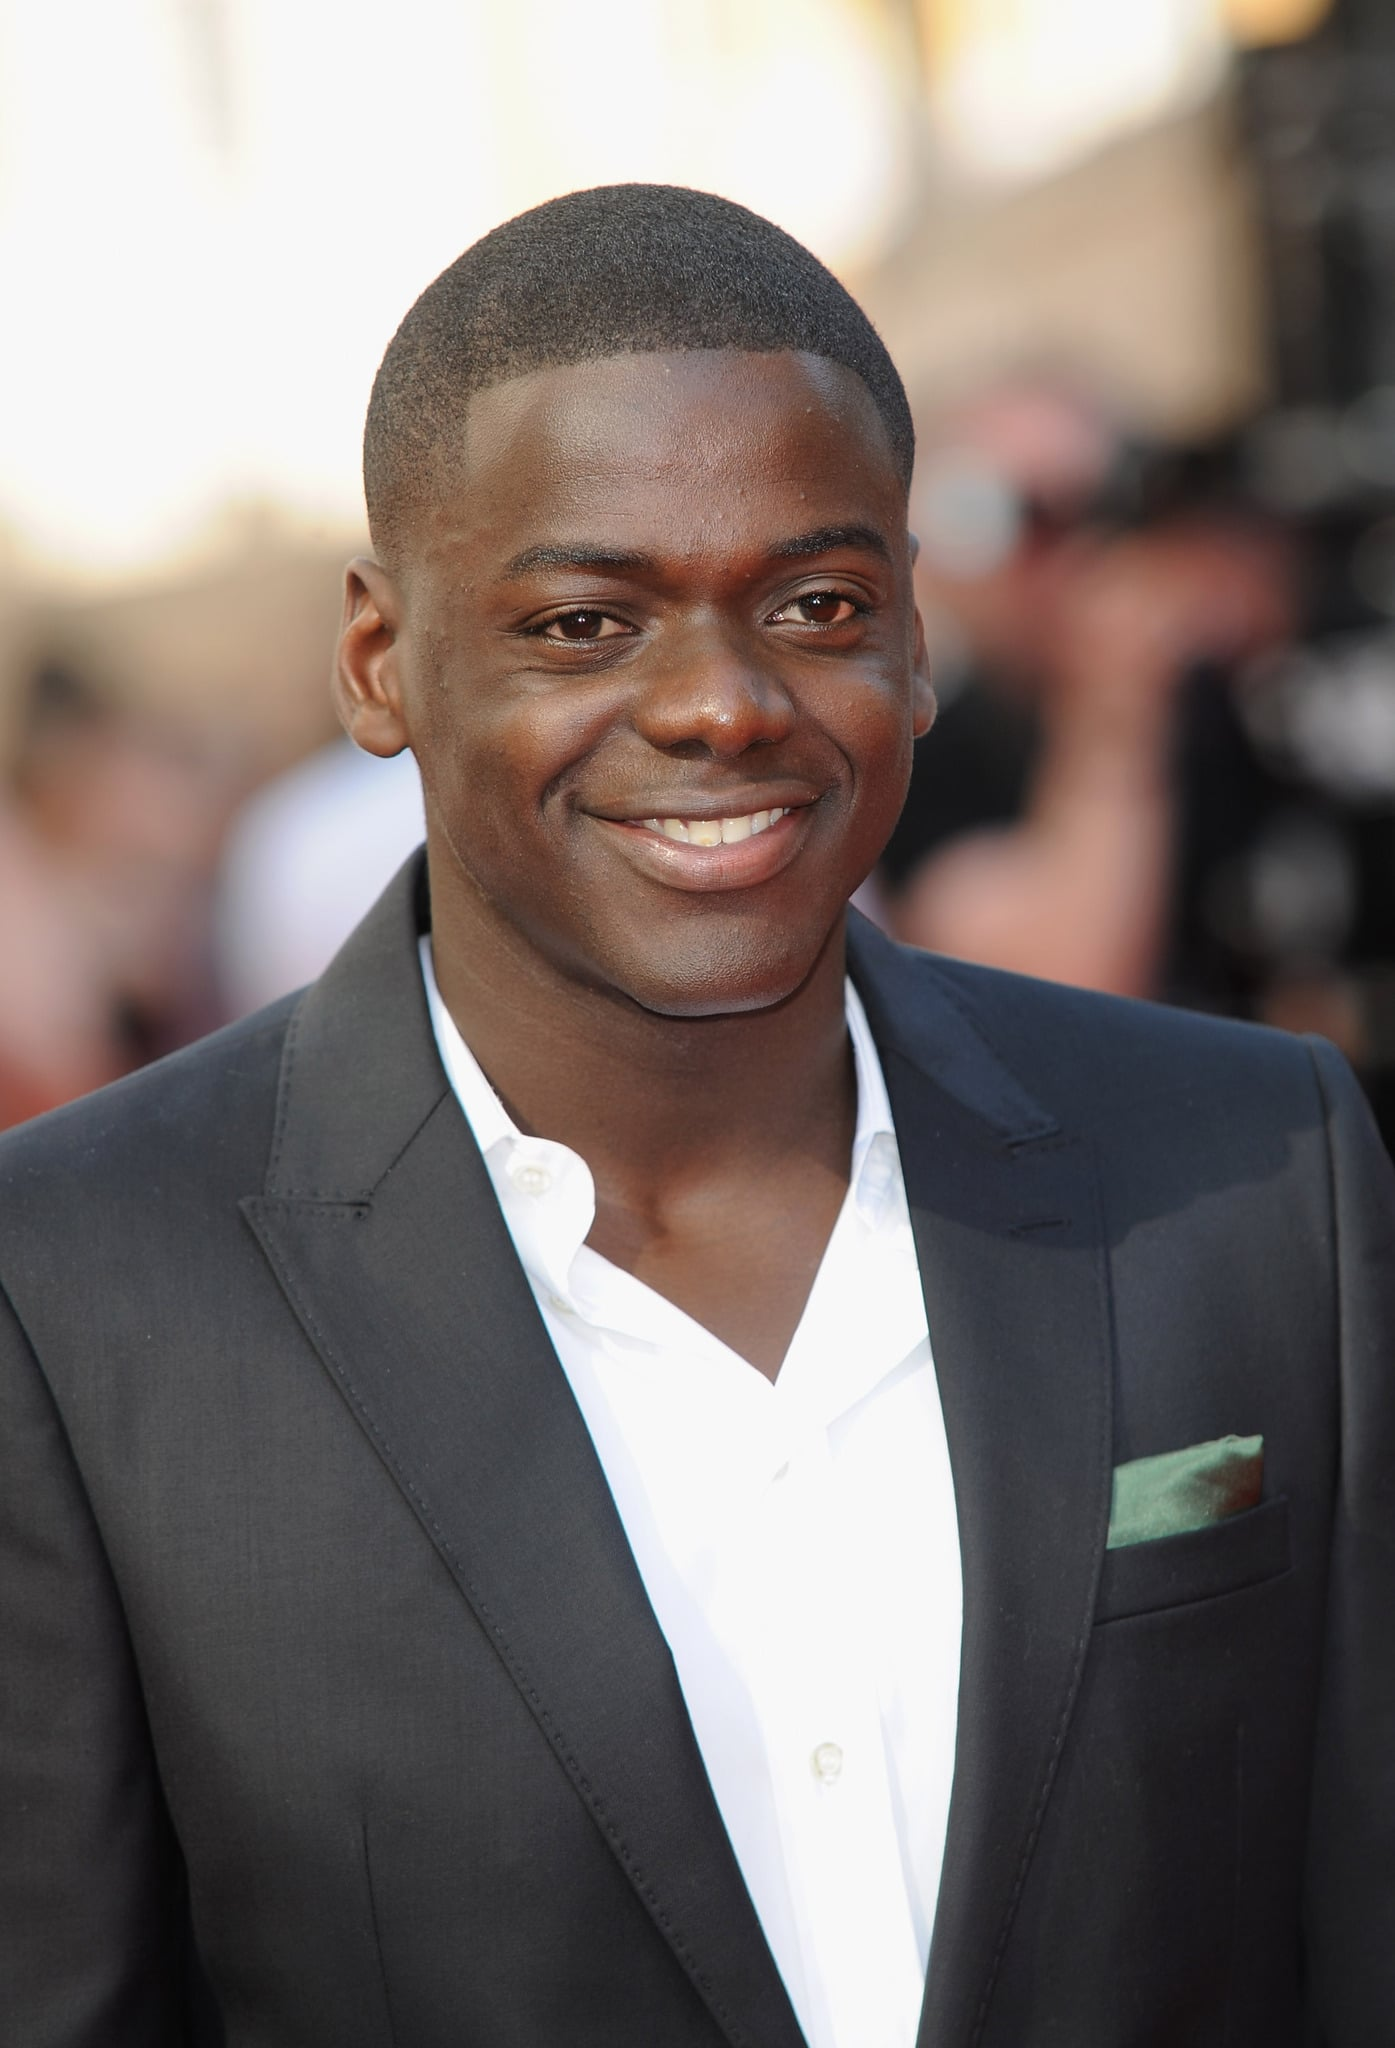 Daniel Kaluuya British Actor, Writer